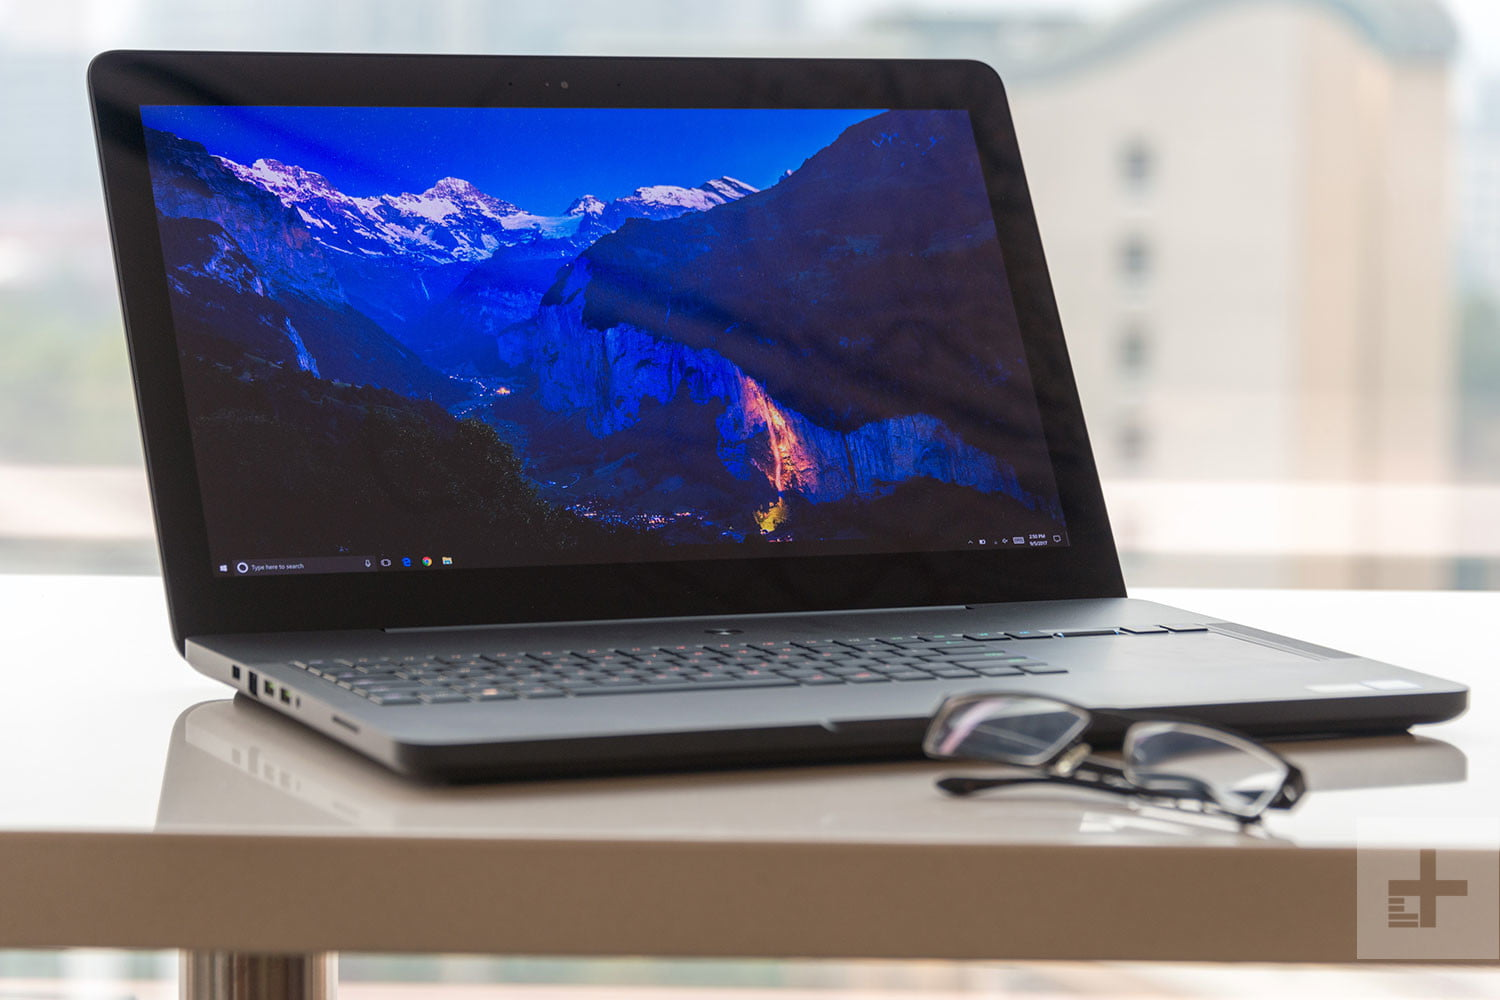 Best Laptops 2020 17 Inch The Best 17 Inch Laptops You Can Buy Right Now | Digital Trends